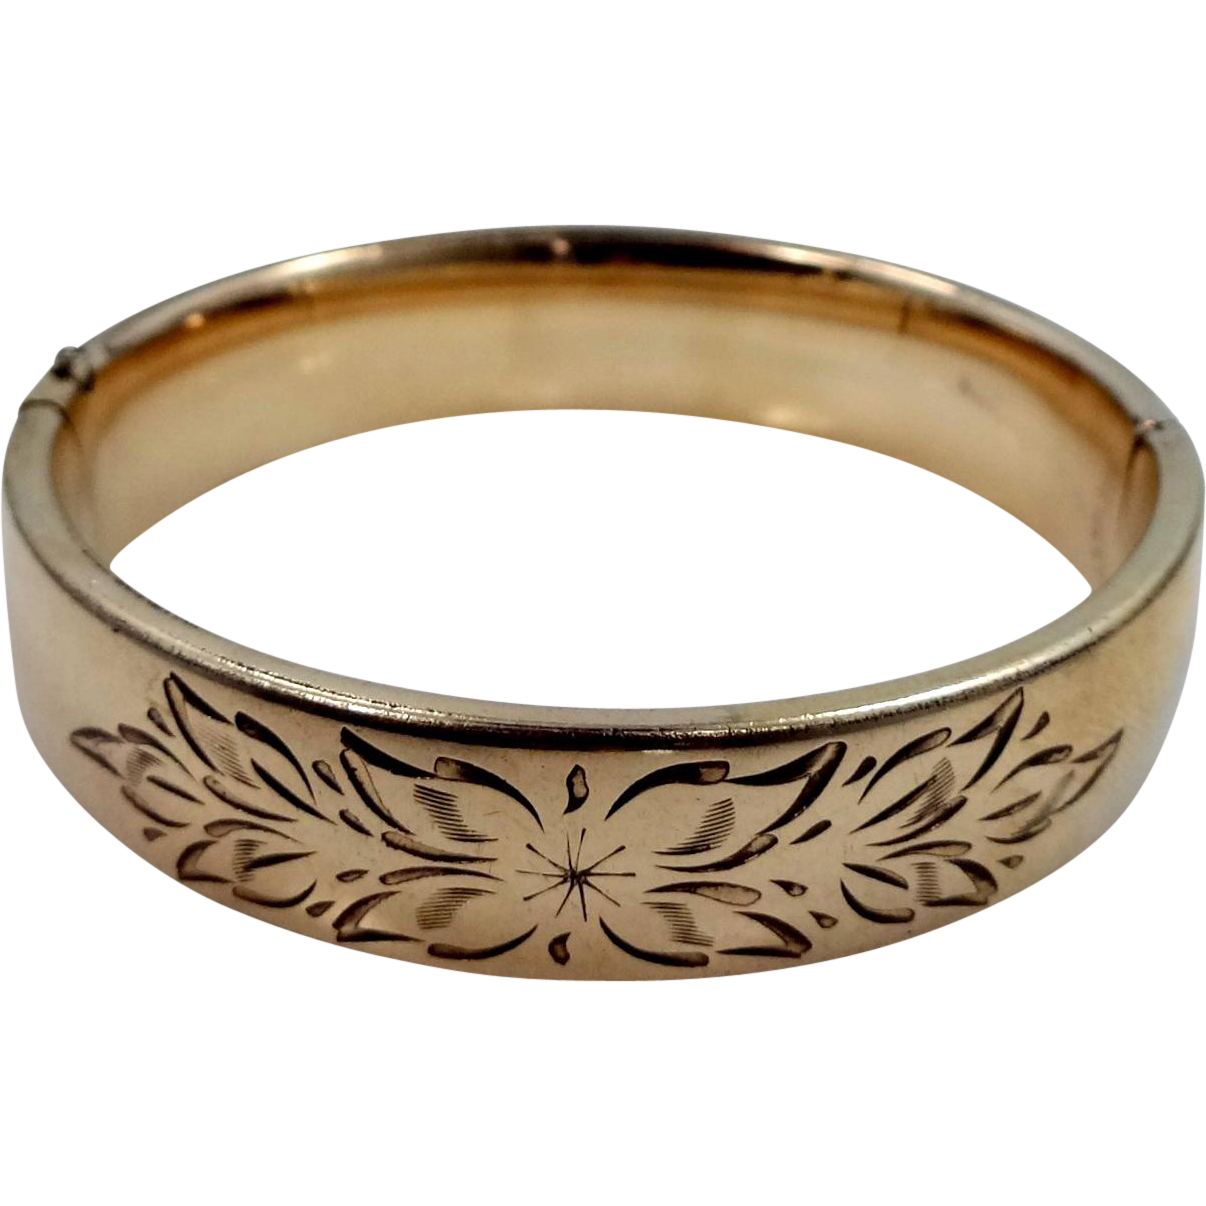 Vintage Gold Filled Craftmere Bangle Bracelet with Floral Etching